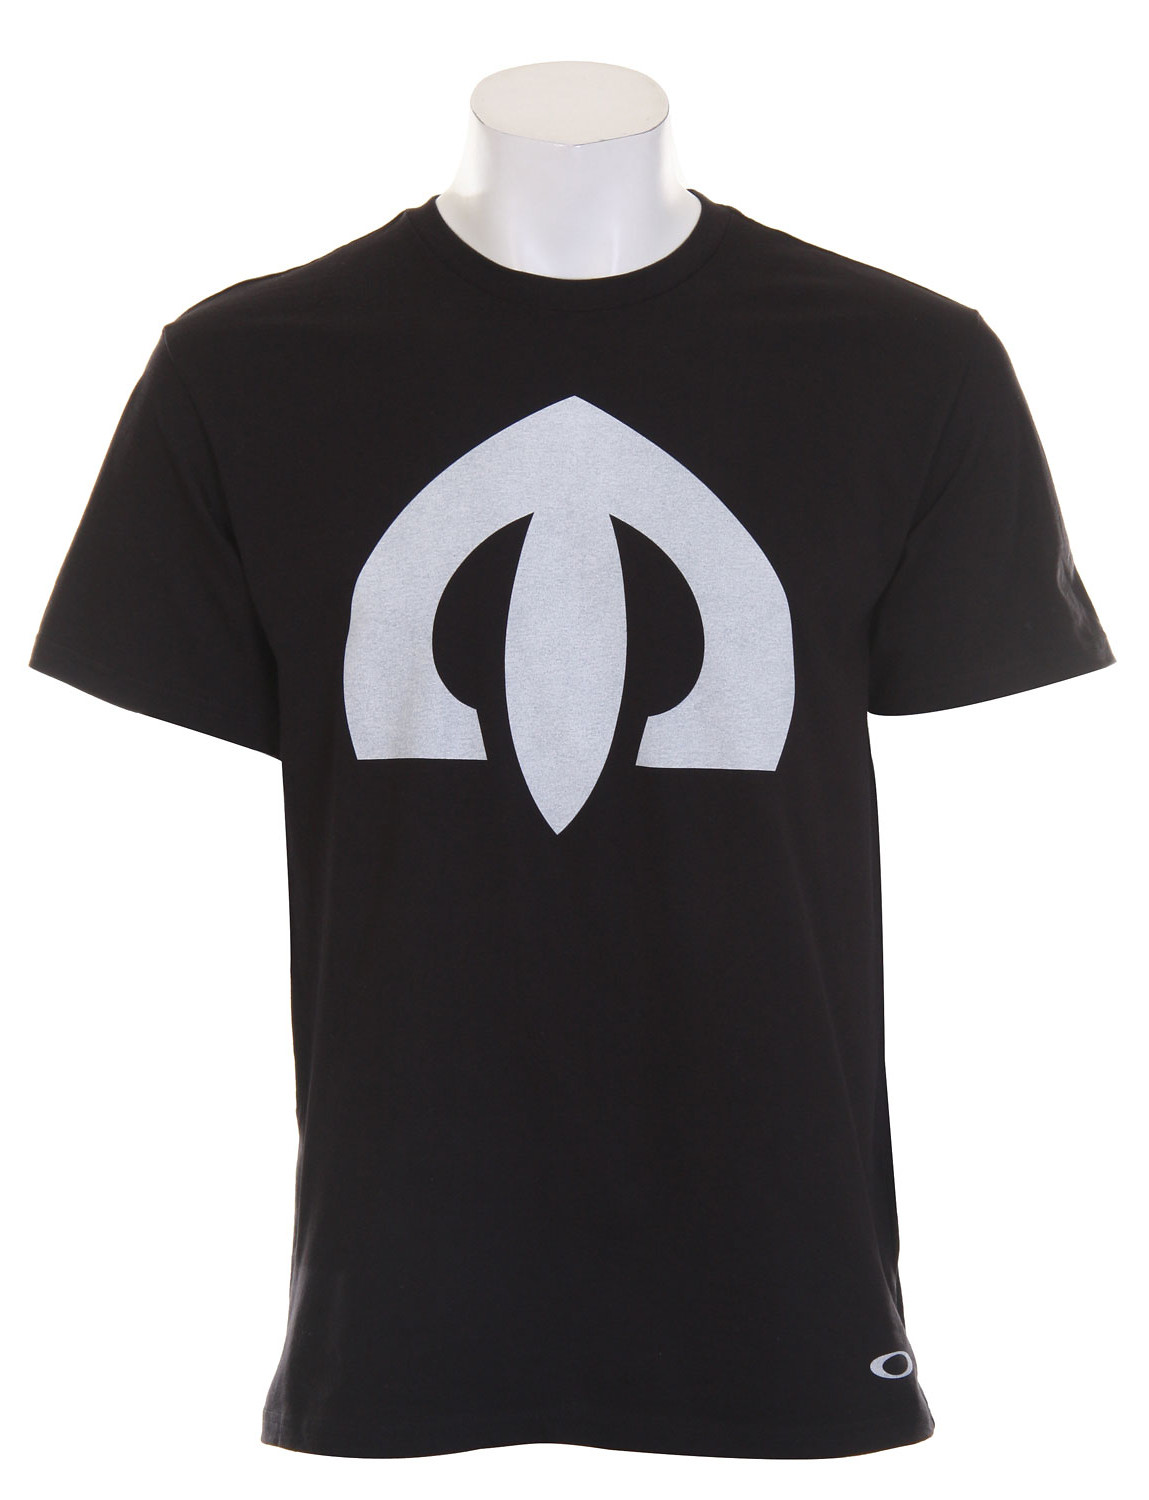 Oakley Sword 2.9 T-Shirt Black  oakley-sword-t-blk-10.jpg